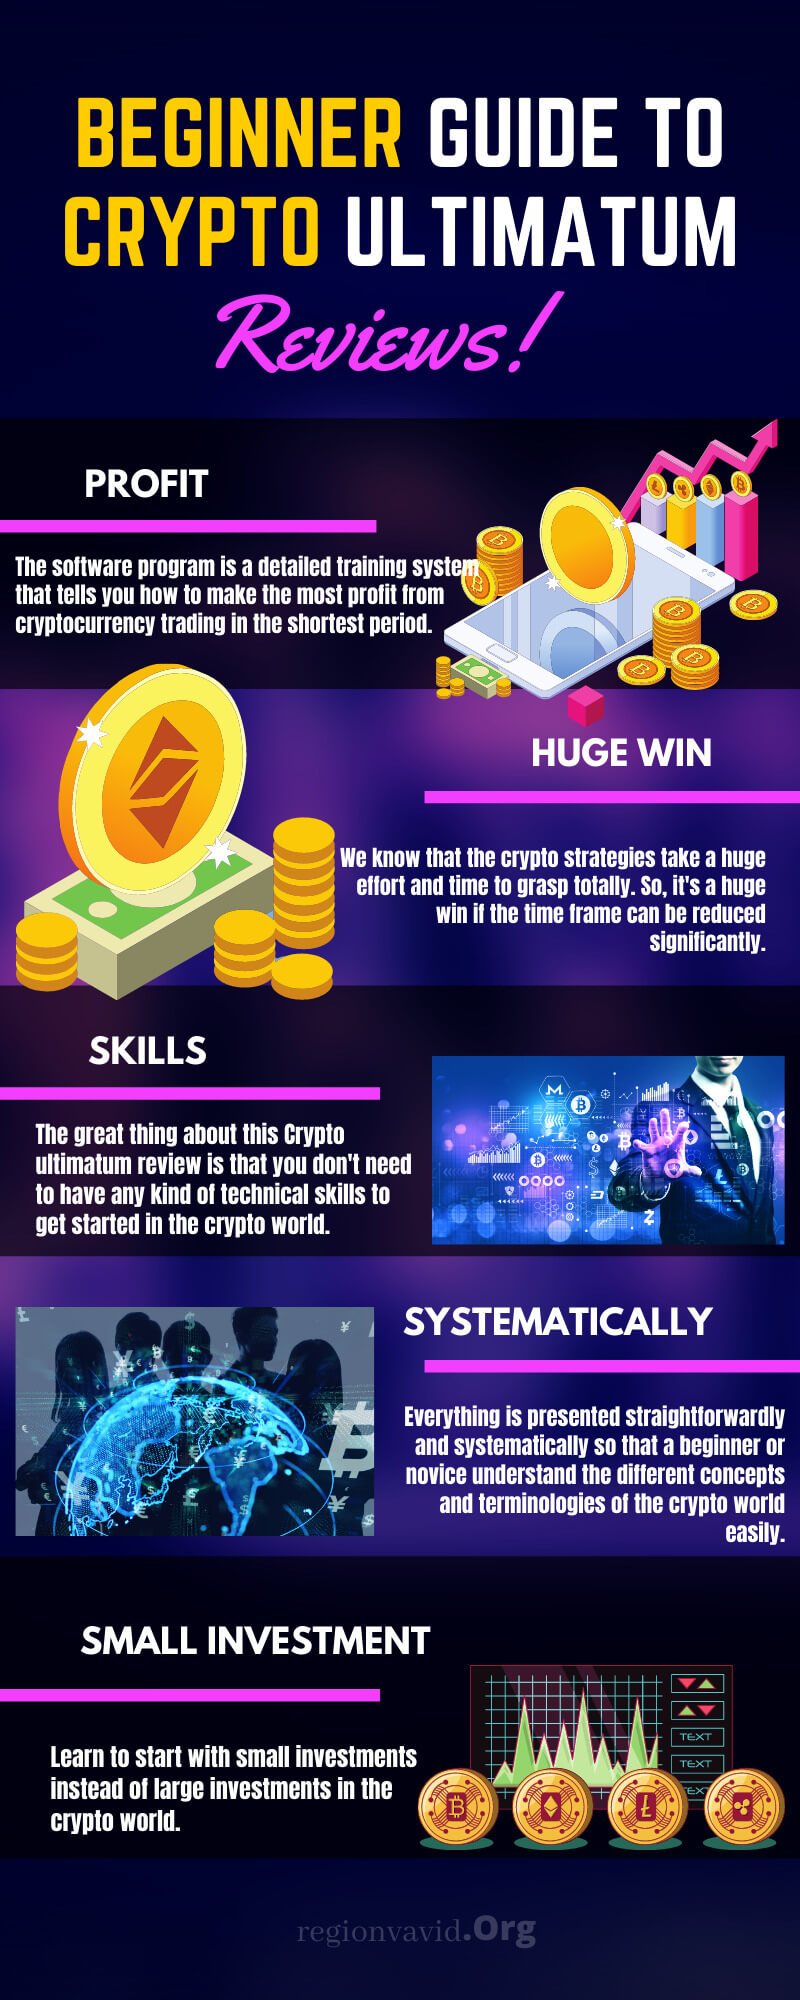 Crypto Ultimatum For Beginners Guide